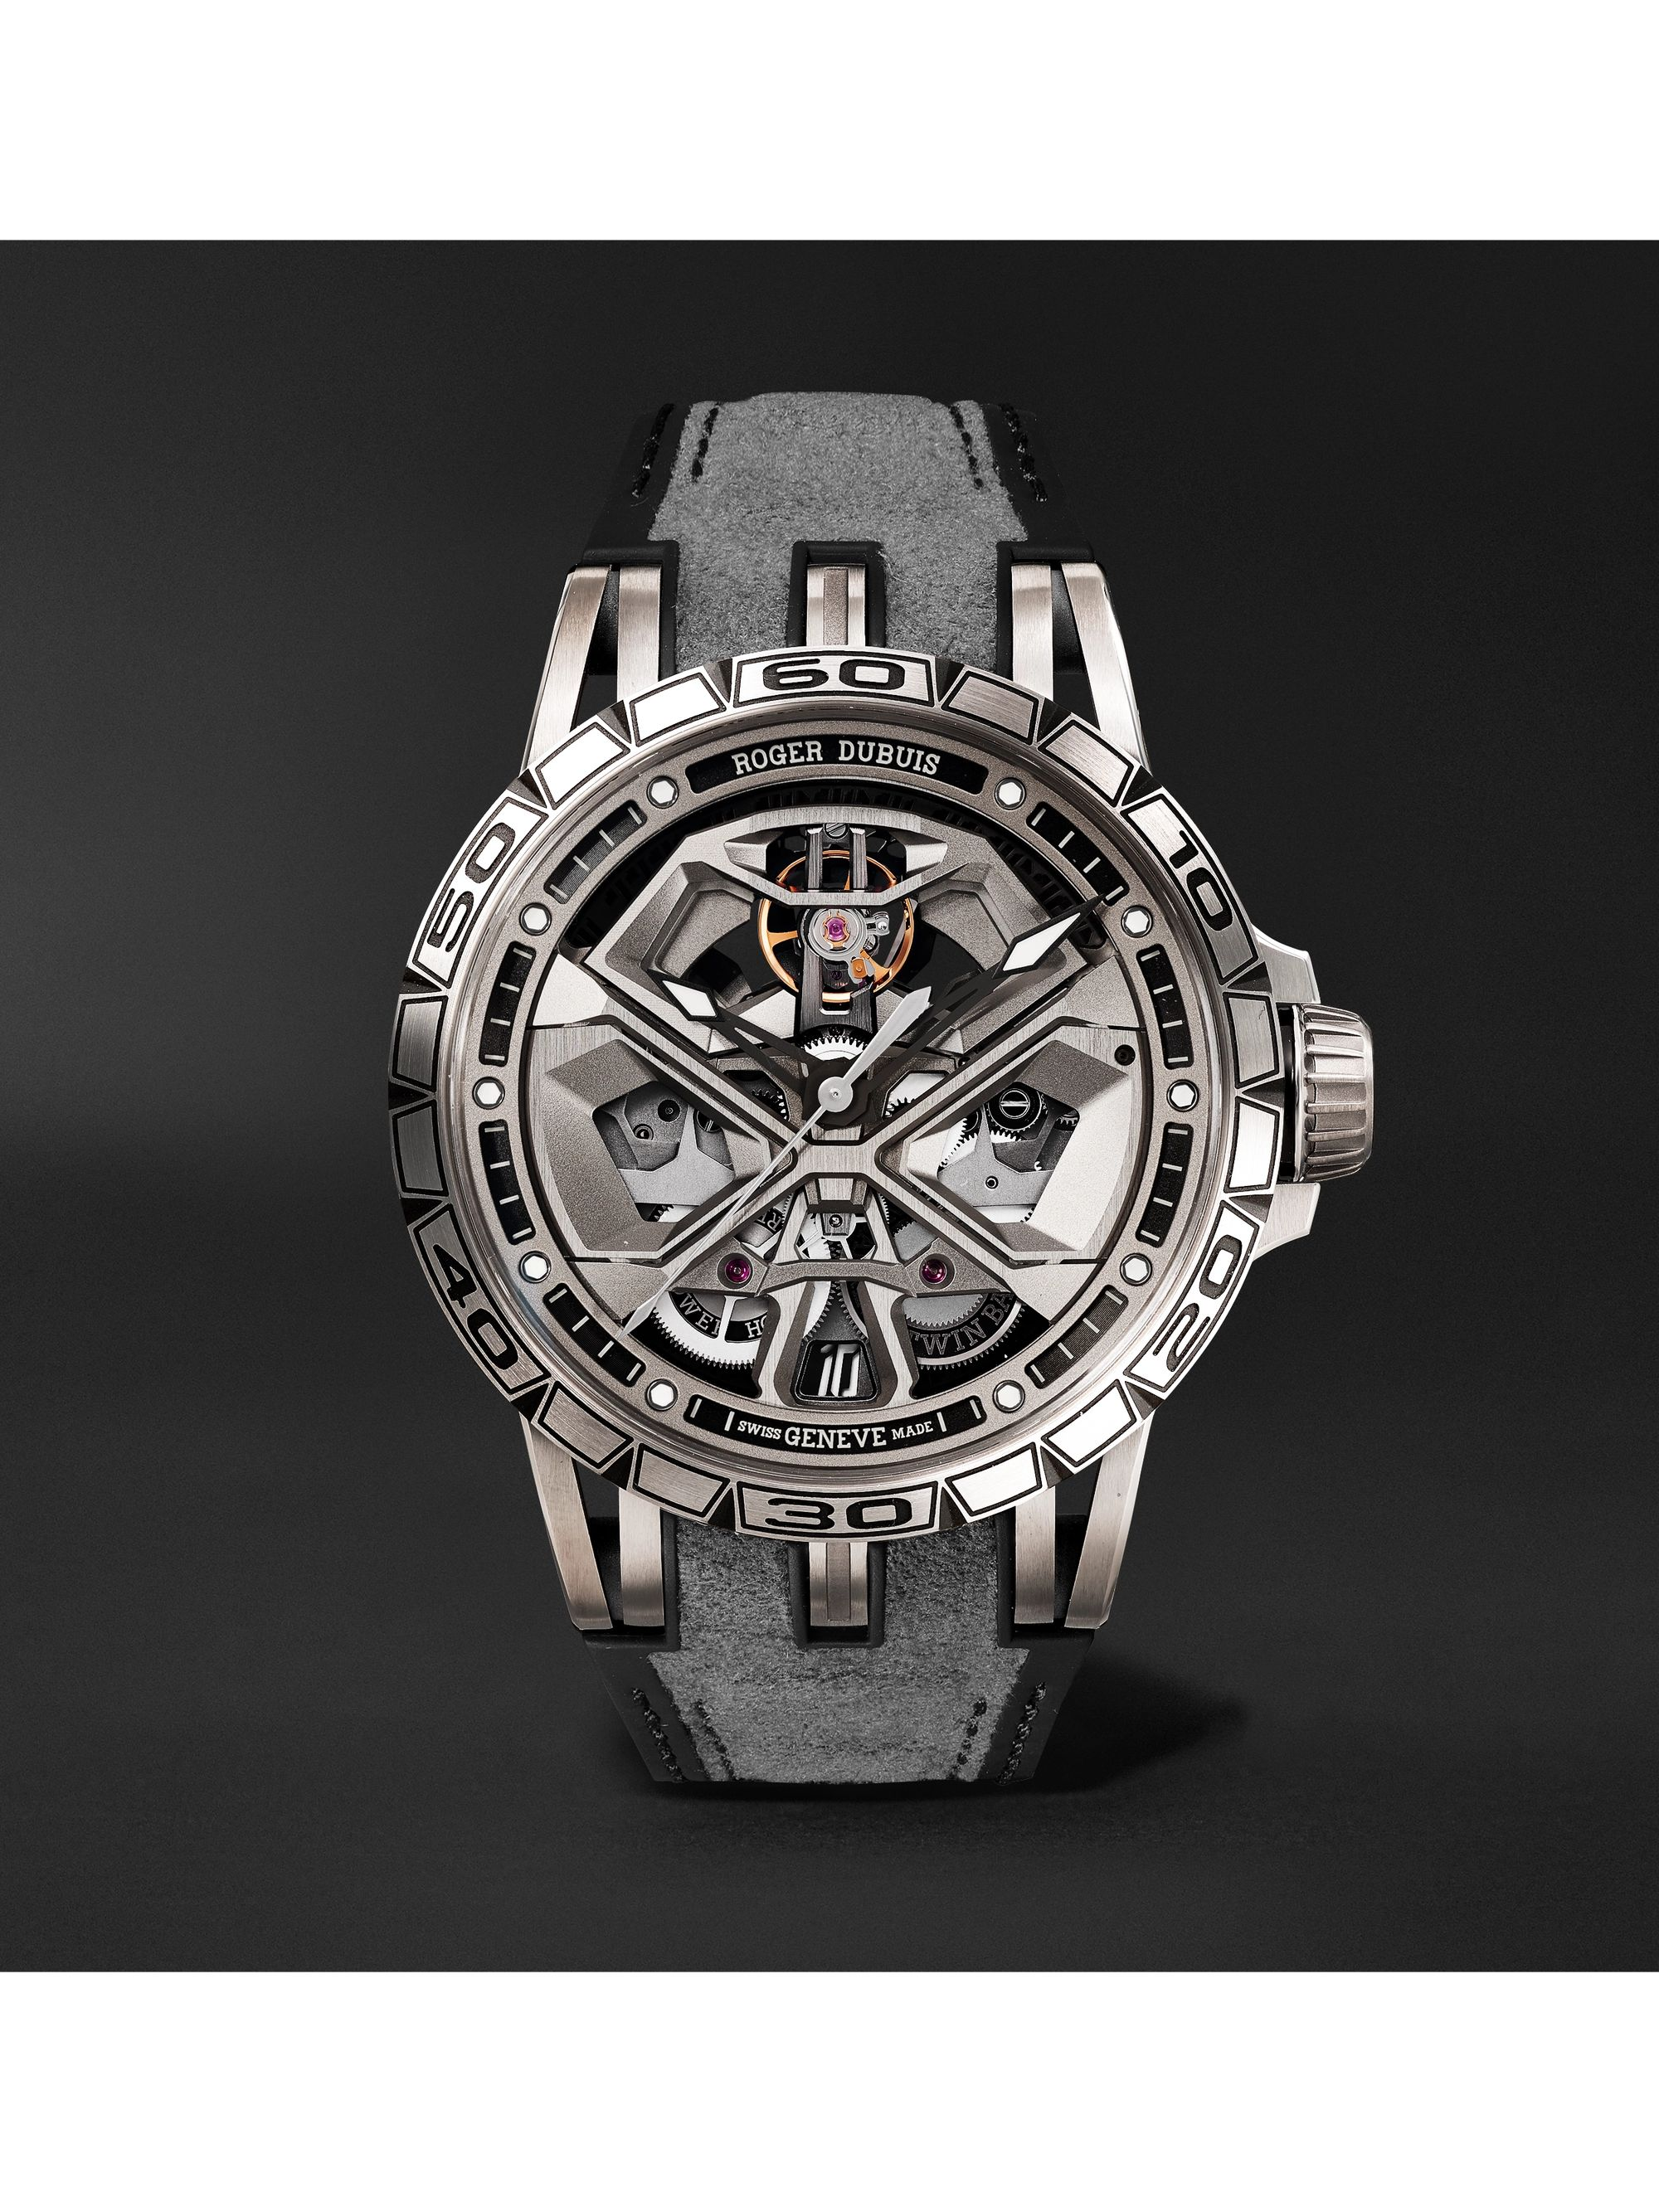 Roger Dubuis Excalibur Huracán Automatic Skeleton 45mm Titanium and Rubber Watch, Ref. No. RDDBEX0748